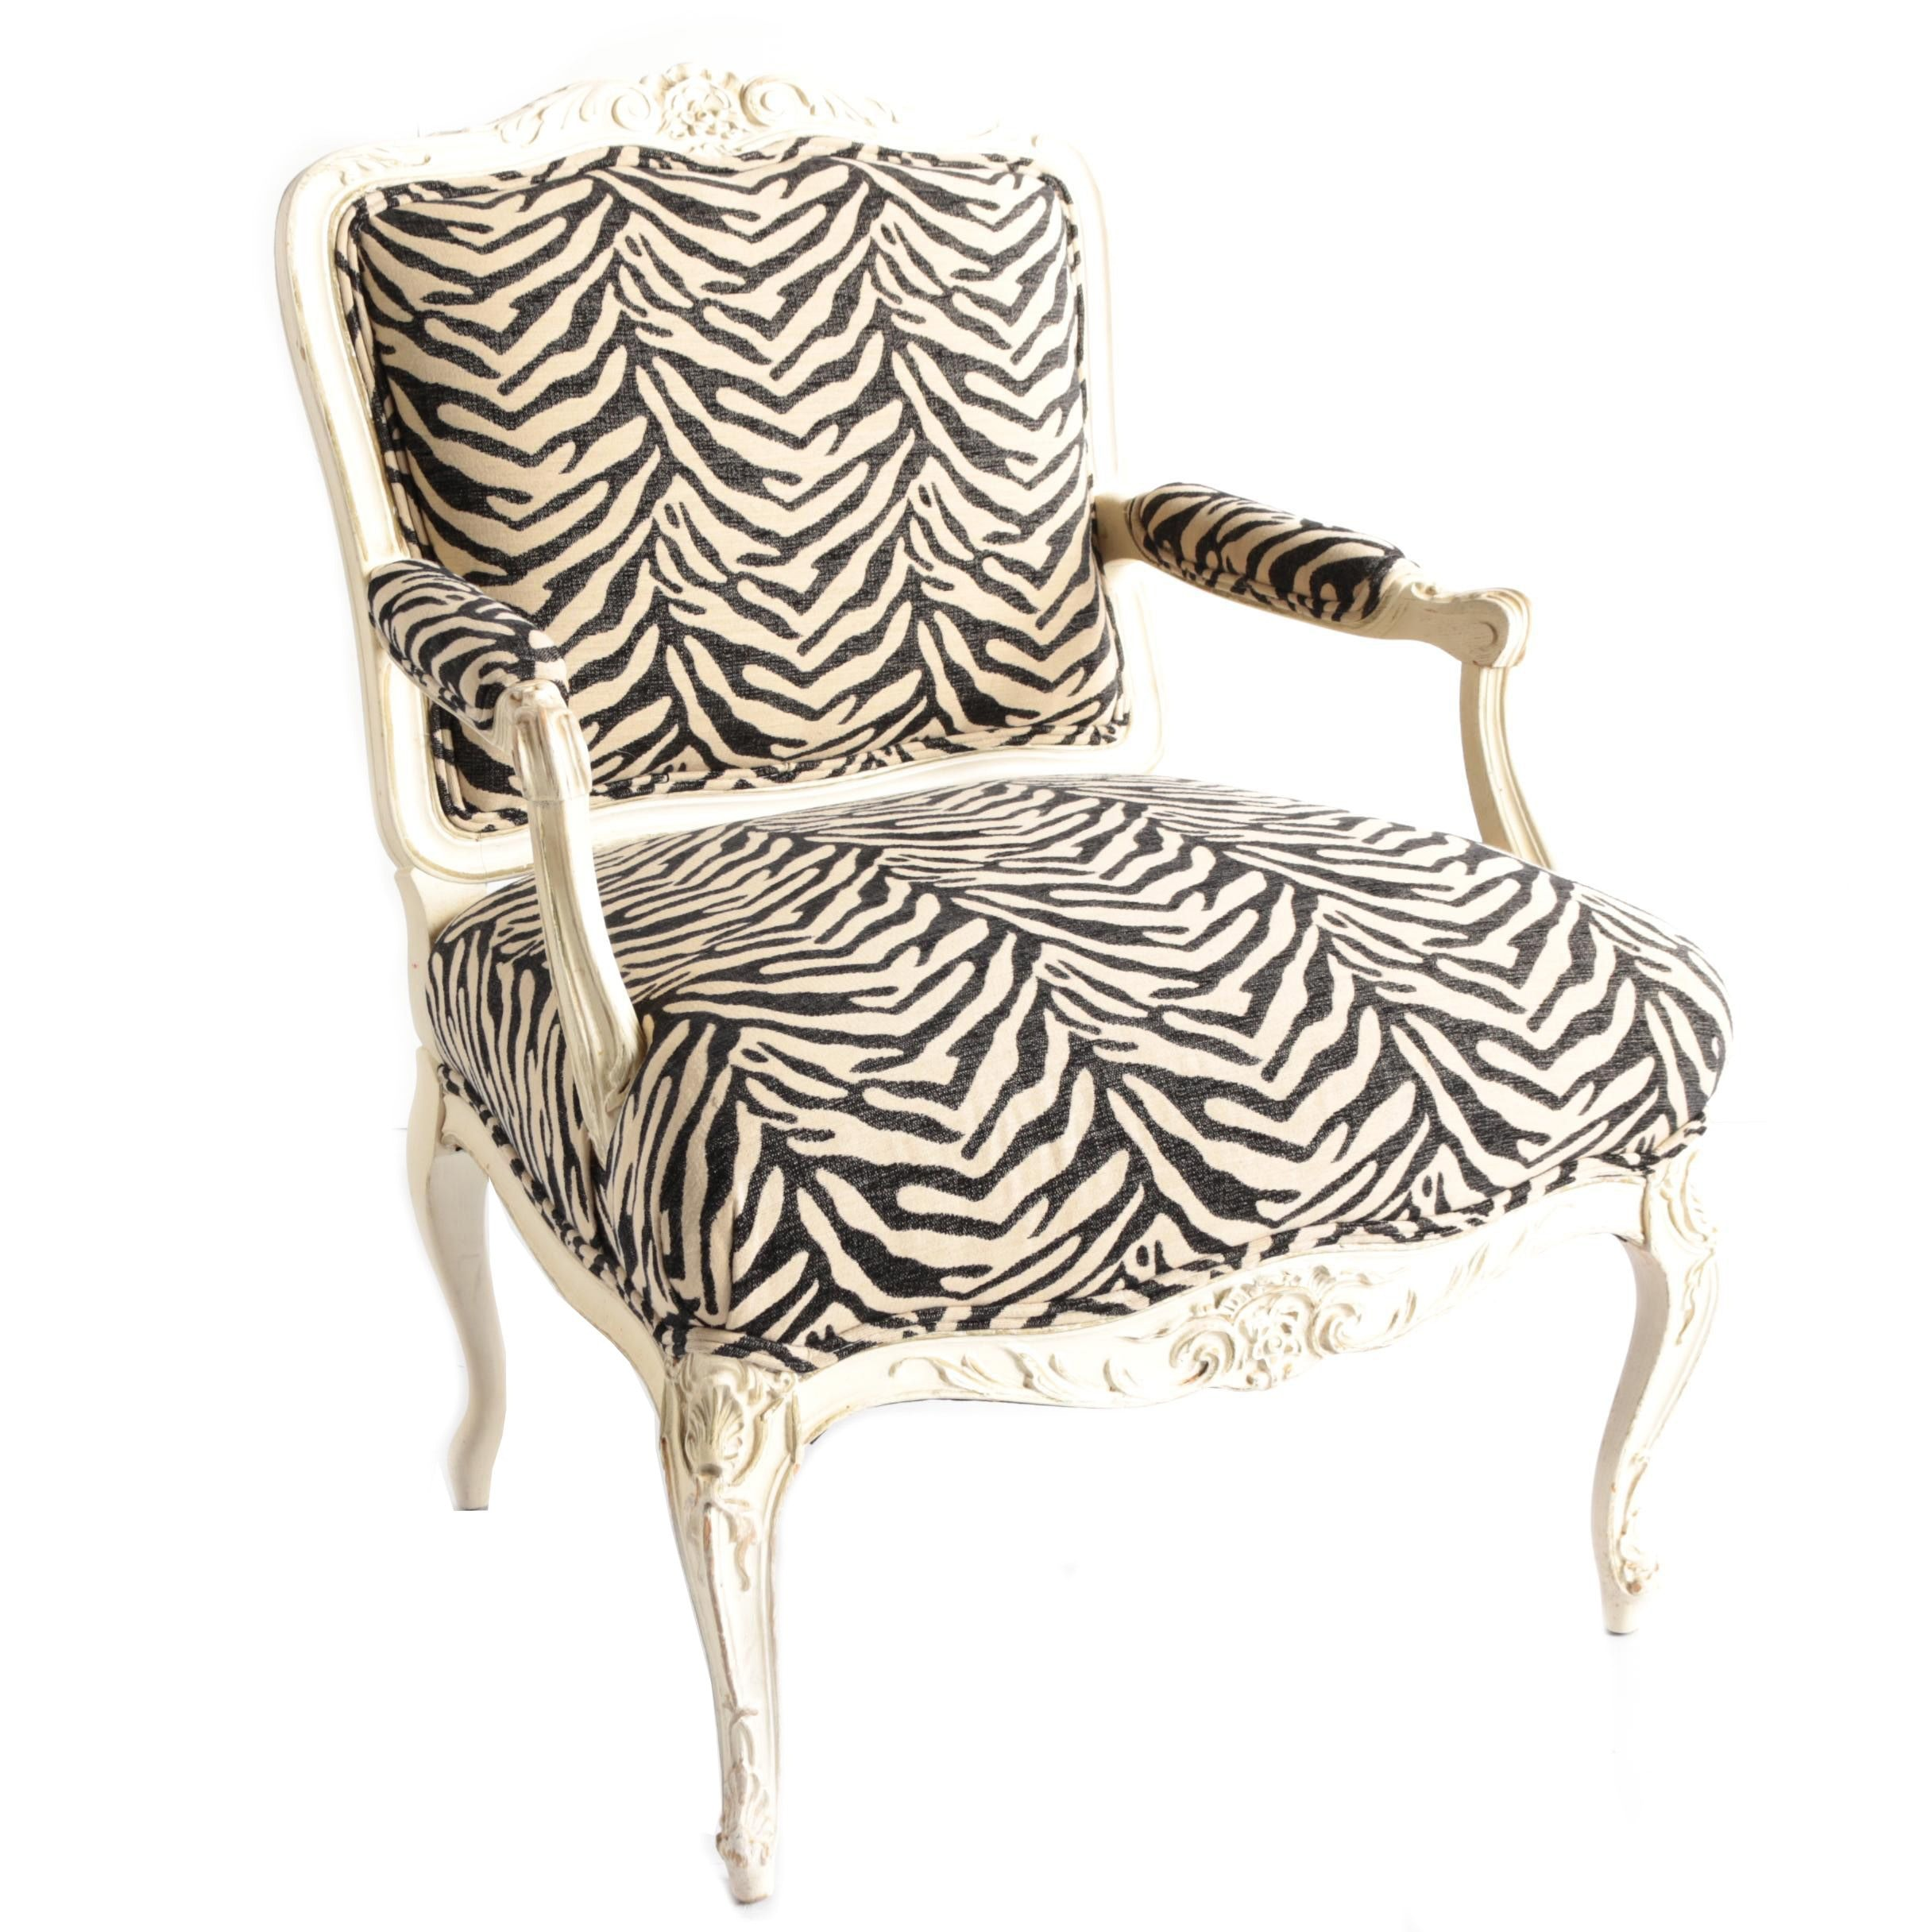 Louis XV Style Painted Armchair with Zebra Print Upholstery